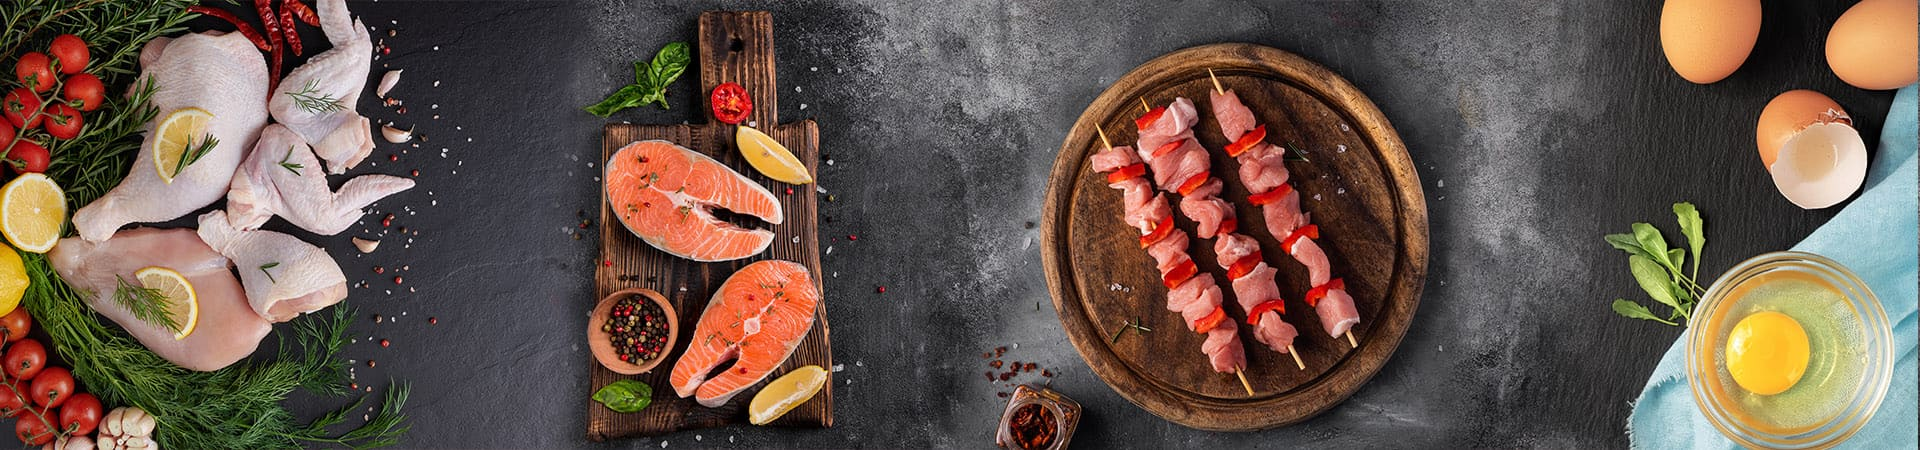 Meat and Seafood packaging and distribution